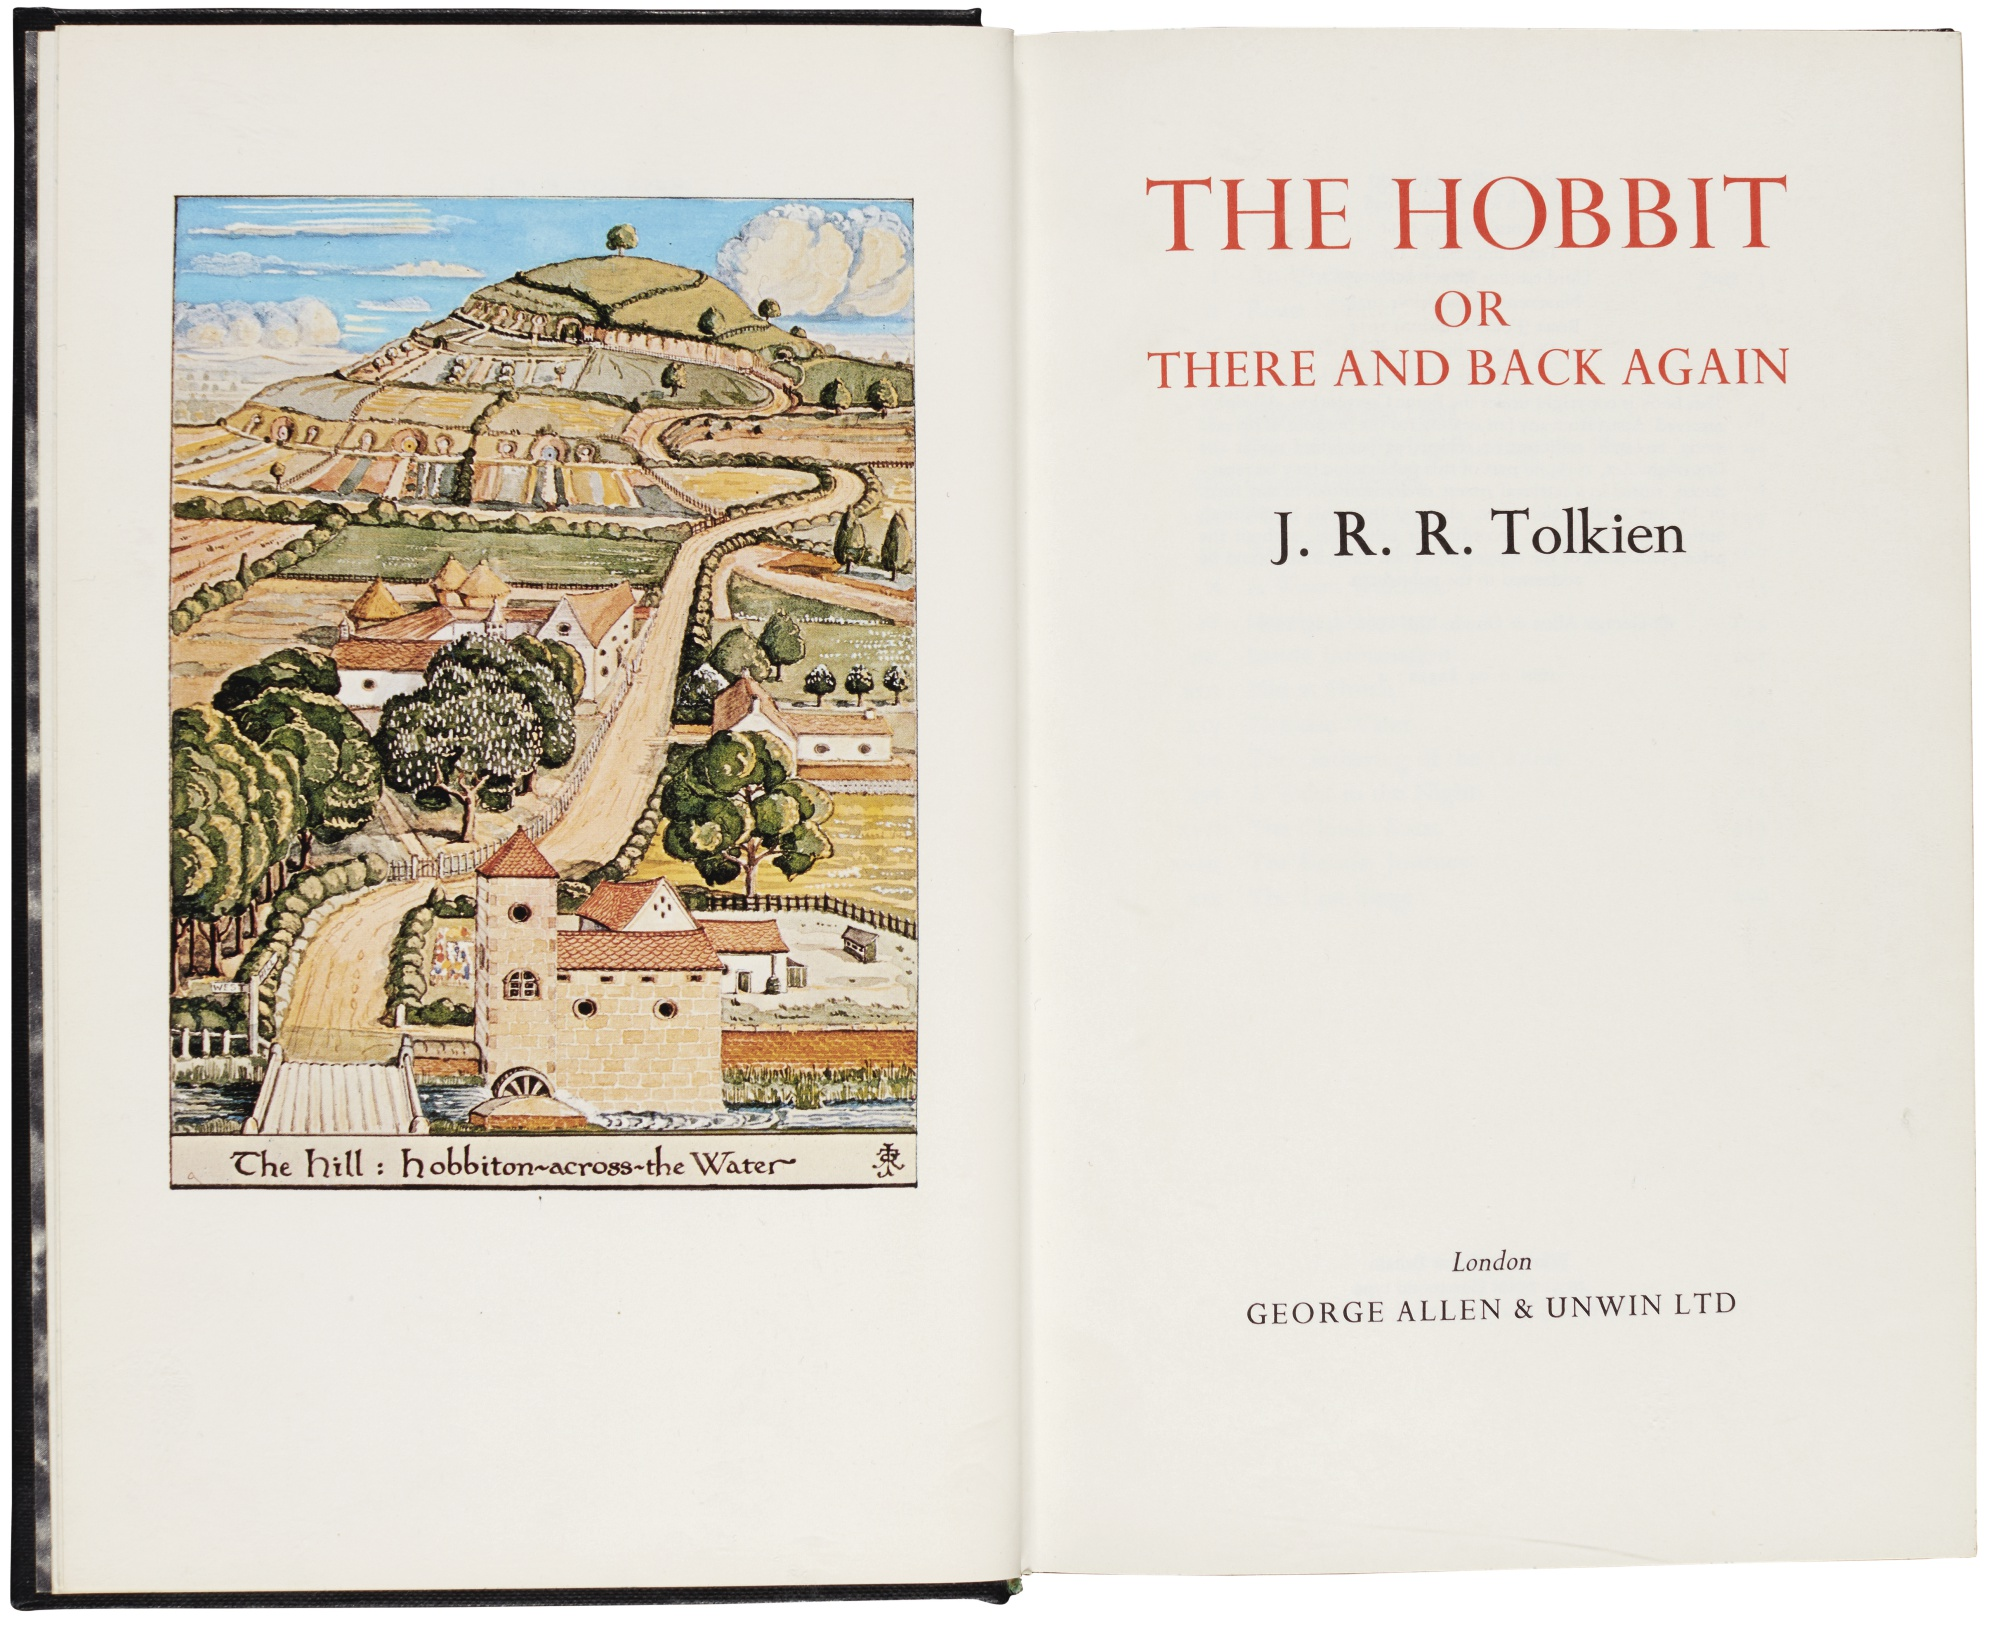 Sothebys Hobbit Lot 223 July 10 2018.jpg